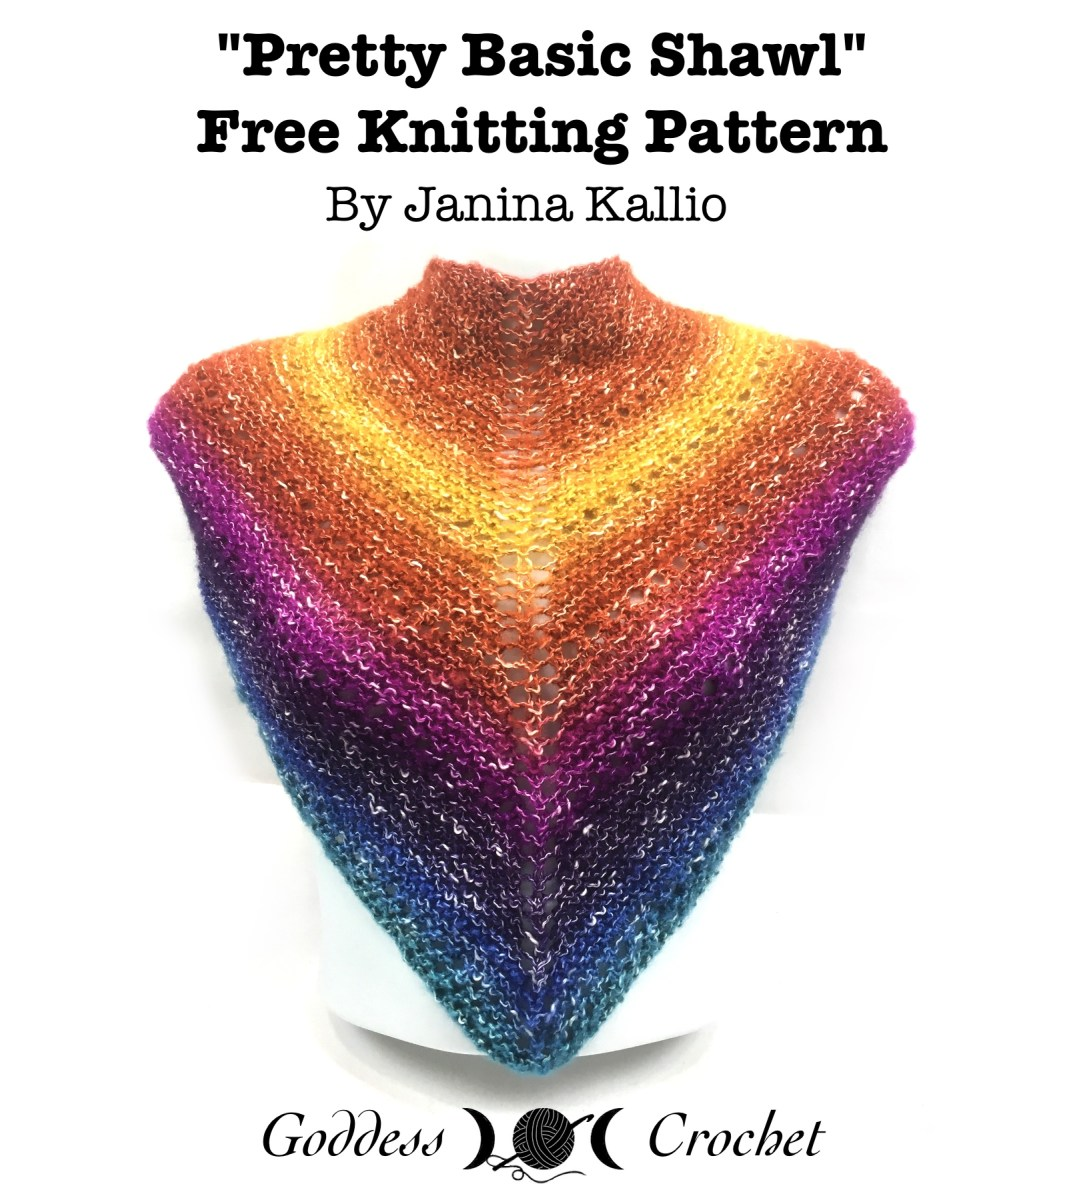 Pretty Basic Shawl – Free Knitting Pattern Review – Goddess Crochet